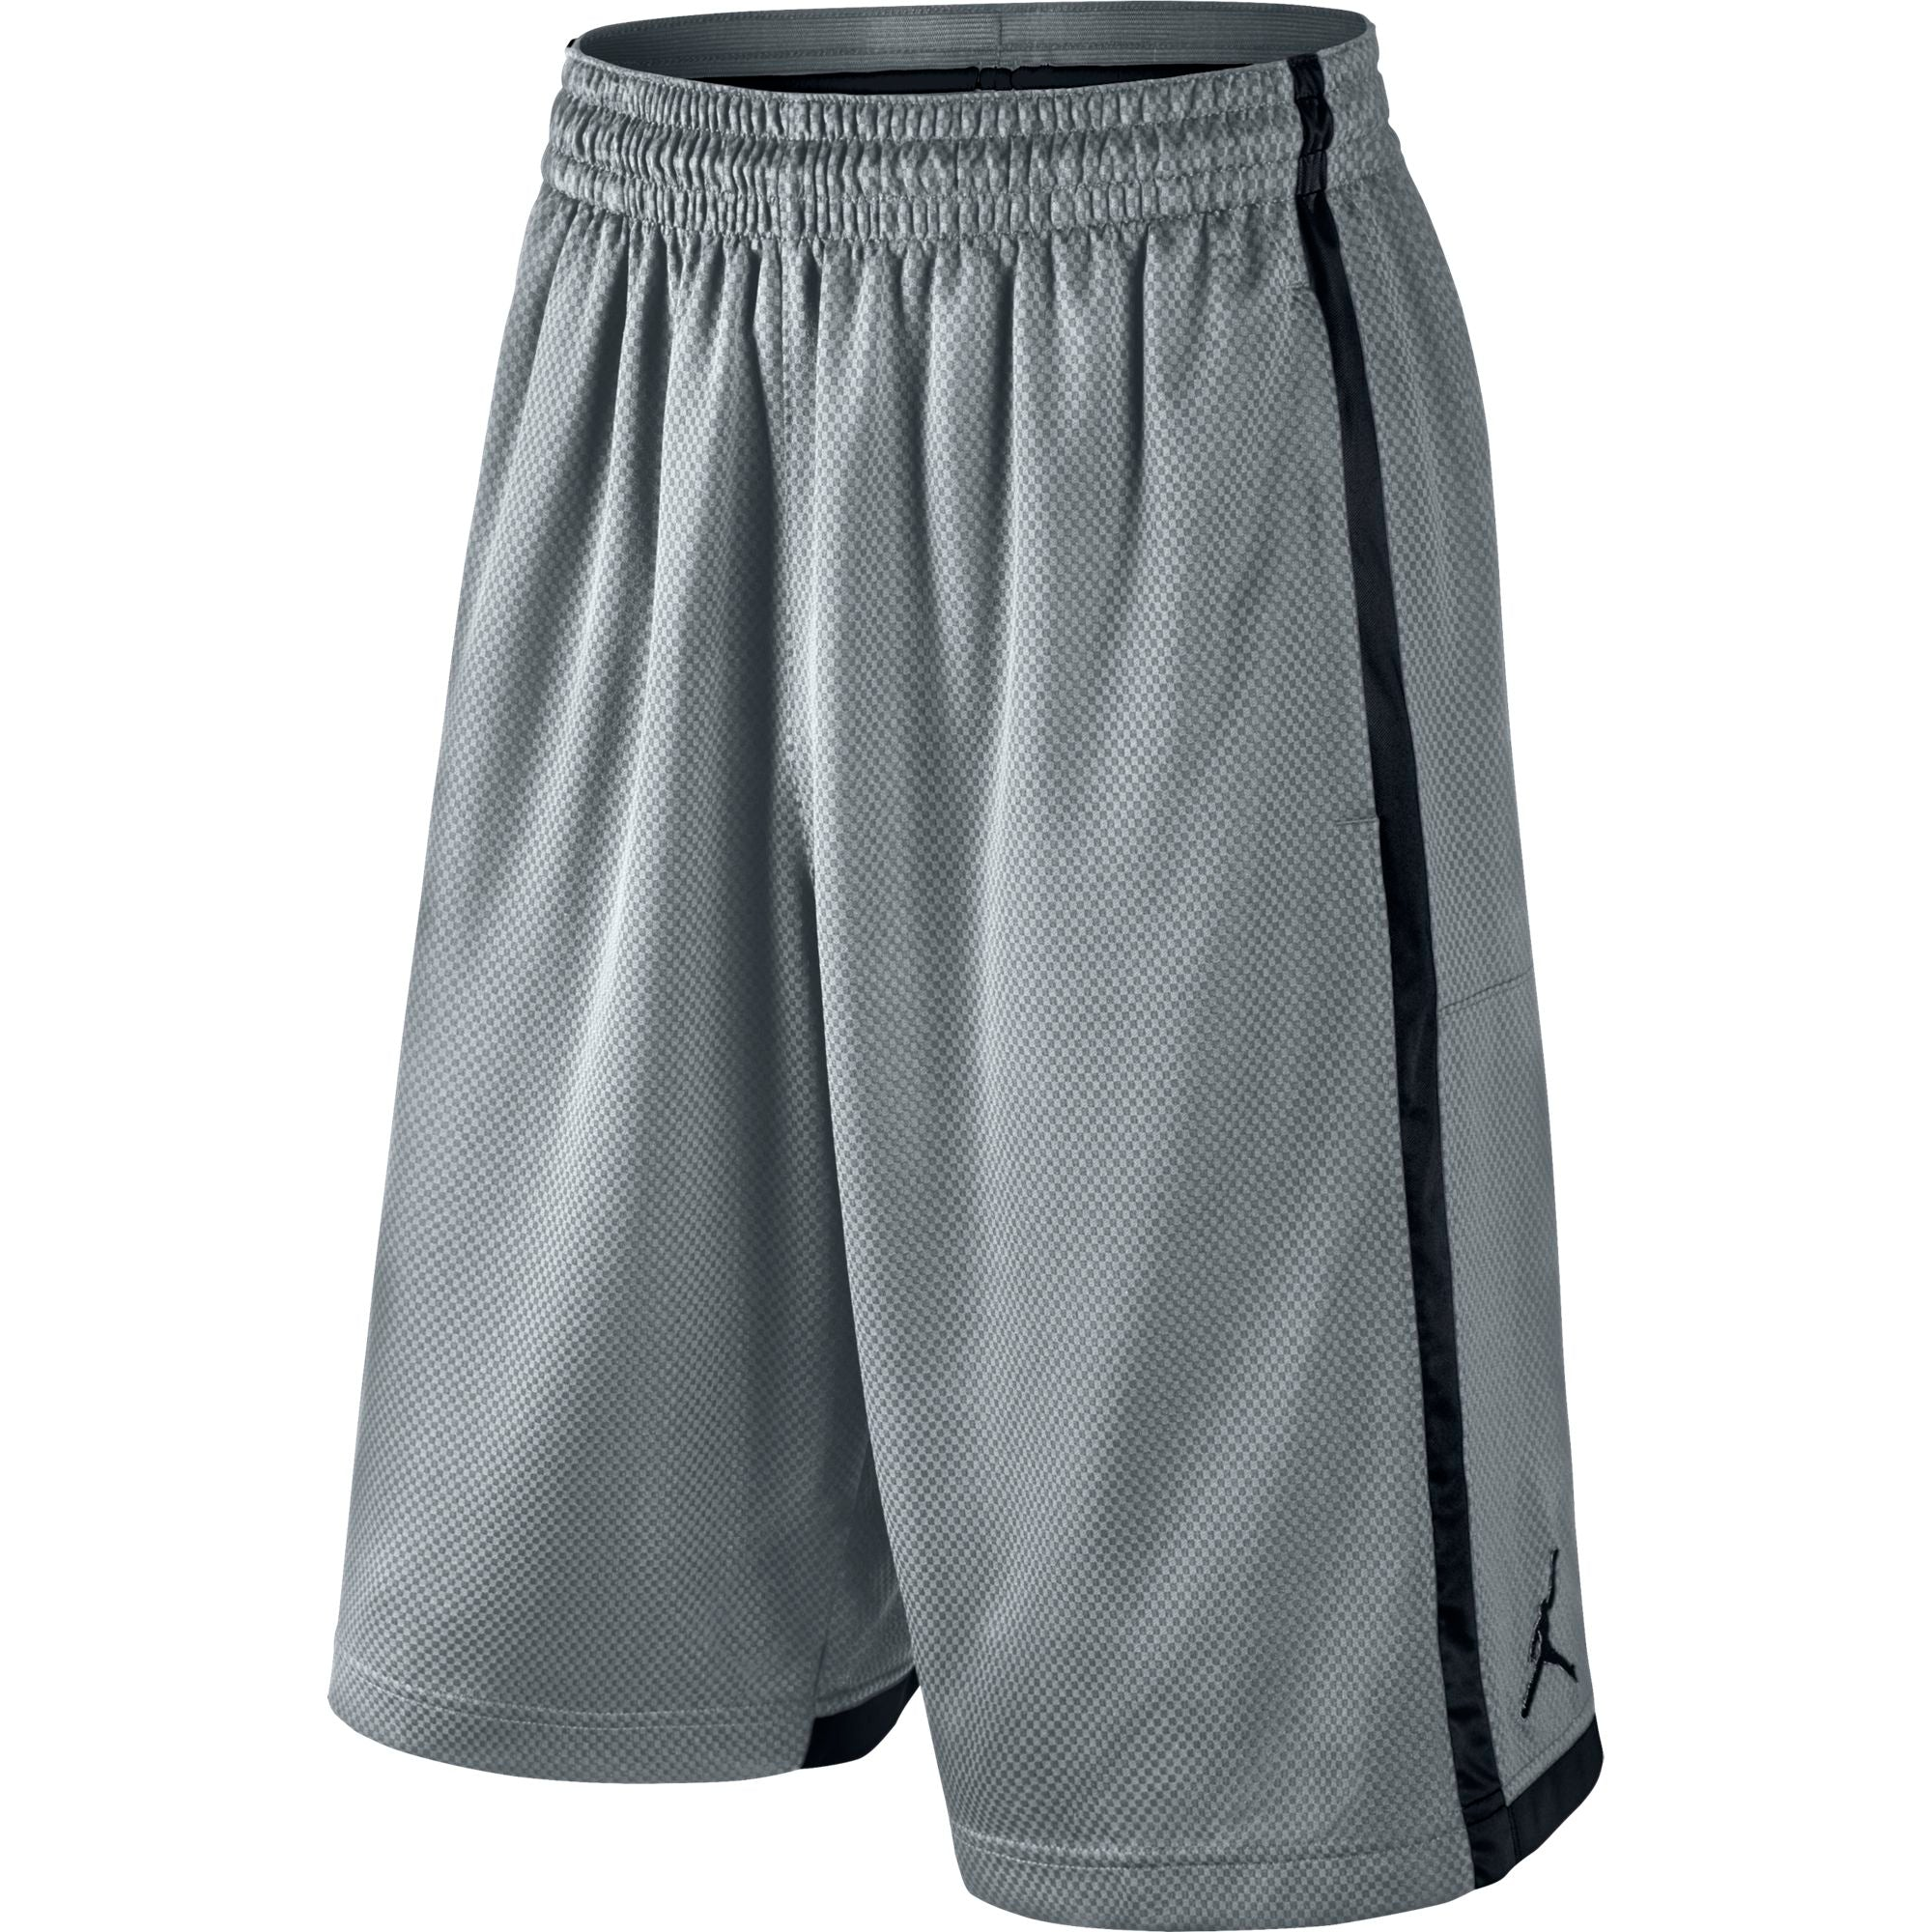 Nike Jordan Crossover Basketball Shorts - NK-724834-012